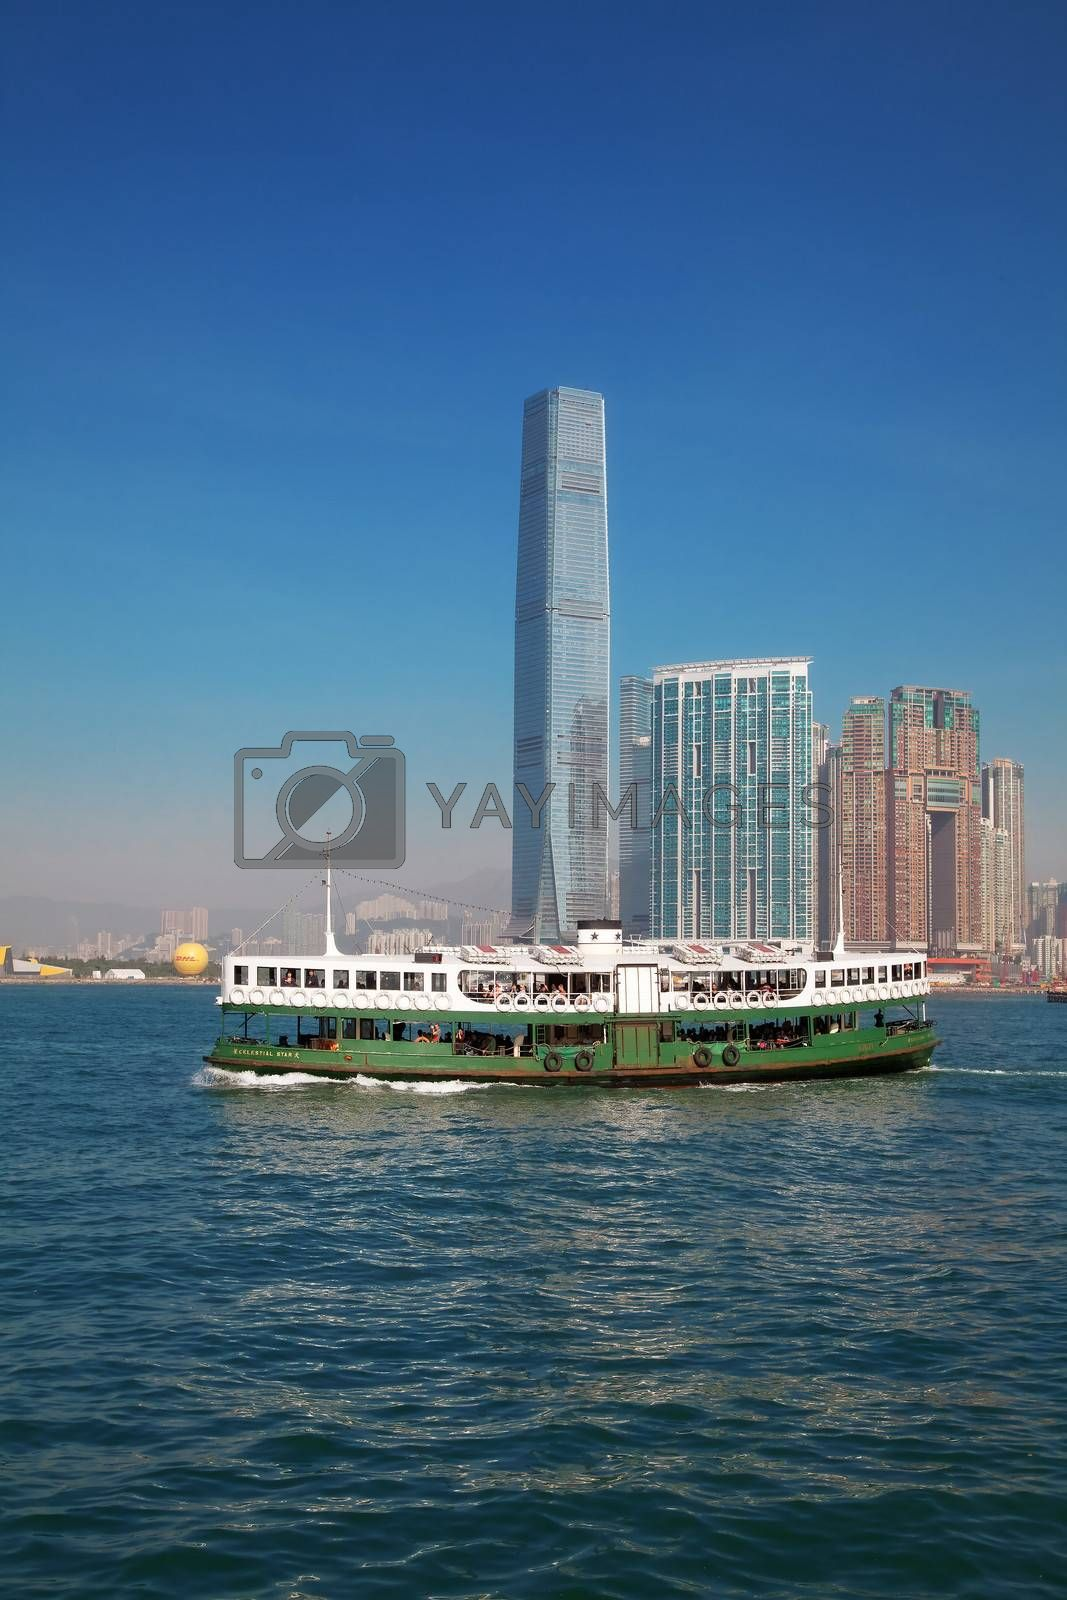 """HONG KONG - DECEMBER 3: Ferry """"Celestial star"""" cruising Victoria harbor on December 3, 2010 in Hong Kong. Hong Kong ferry is in operation for more than 120 years and it is one main tourist attractions of the city."""